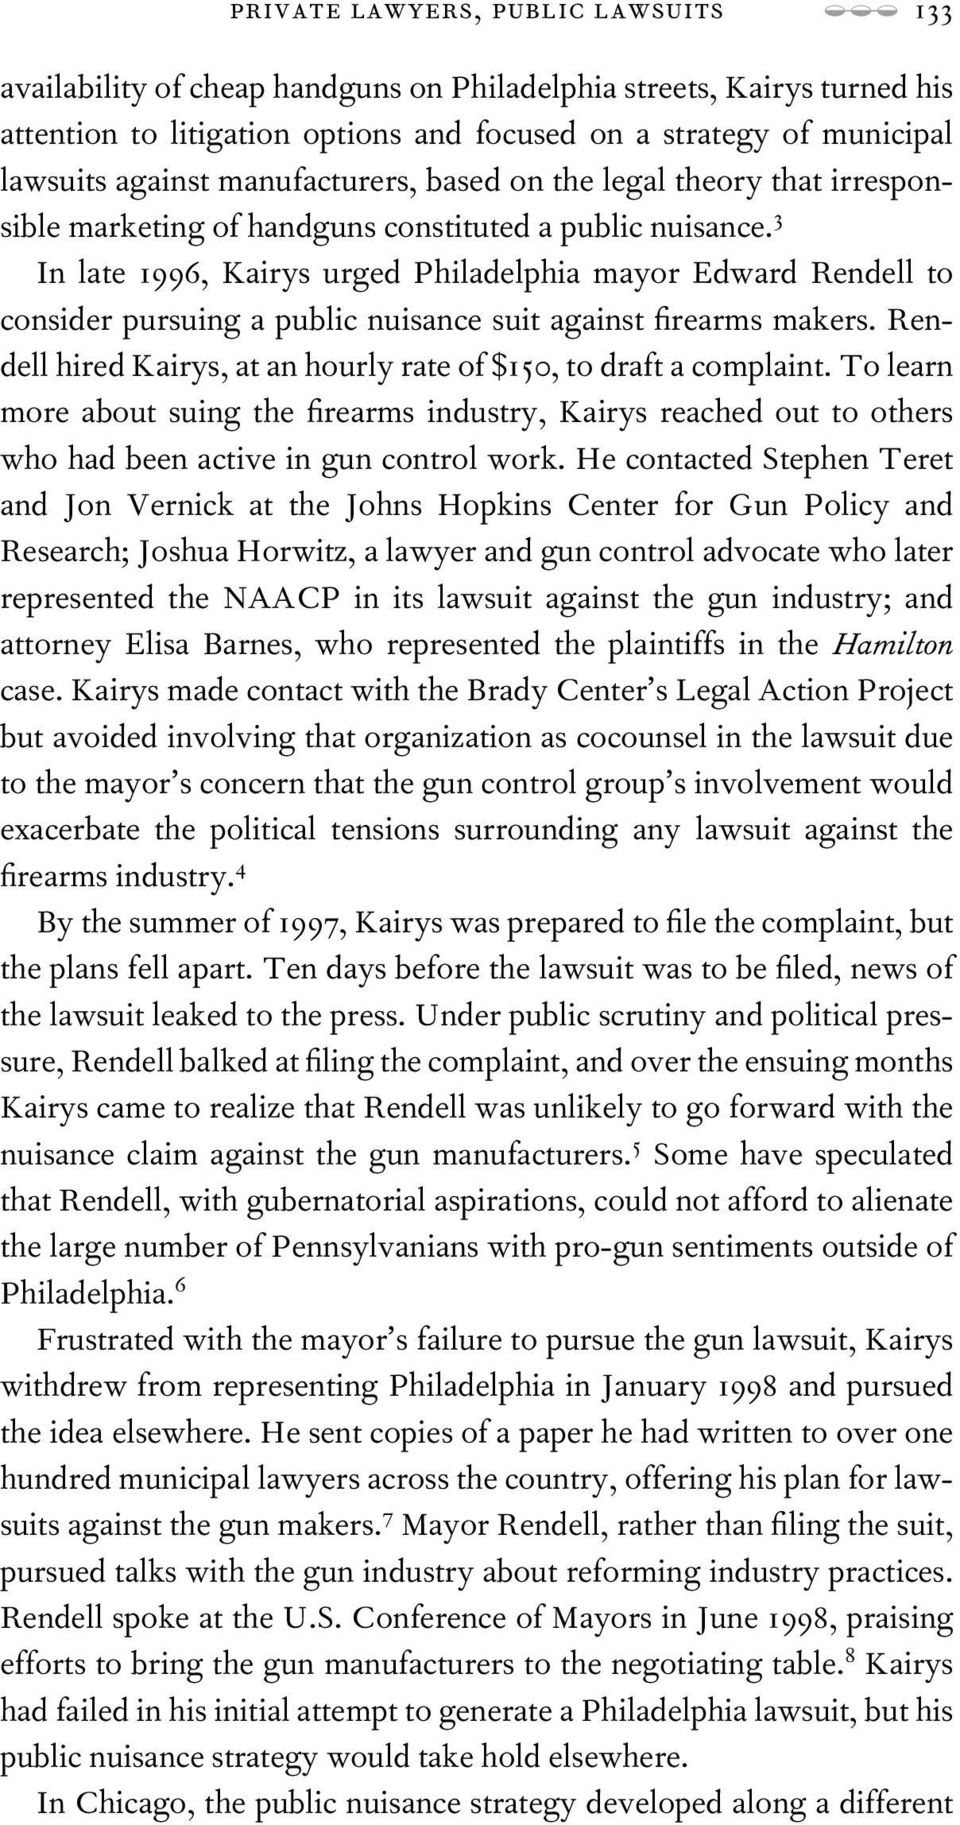 3 In late 1996, Kairys urged Philadelphia mayor Edward Rendell to consider pursuing a public nuisance suit against rearms makers. Rendell hired Kairys, at an hourly rate of $150, to draft a complaint.